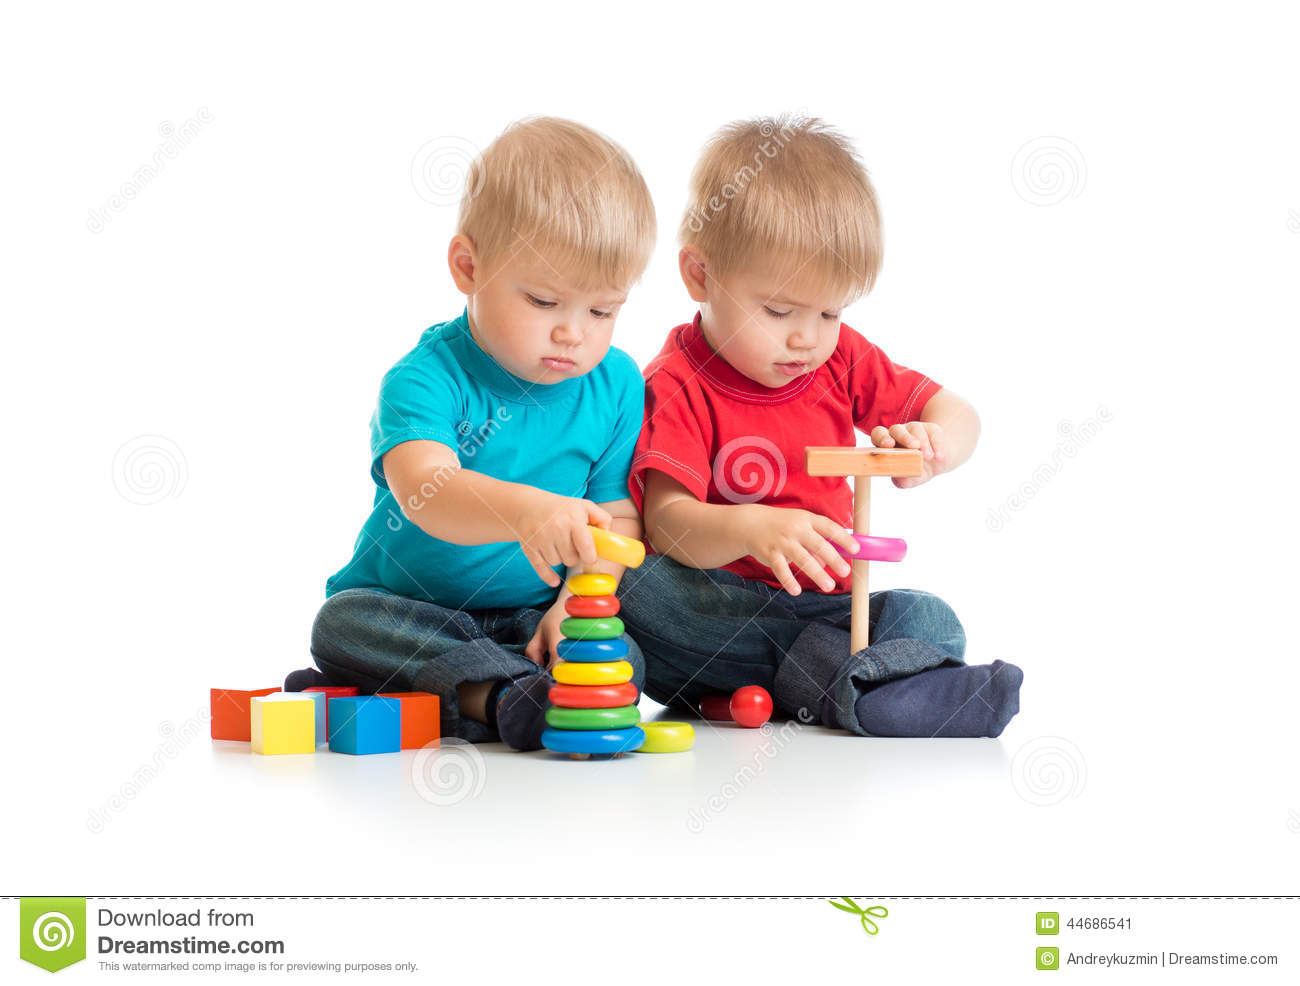 https://thumbs.dreamstime.com/z/children-playing-wooden-toys-together-isolated-44686541.jpg